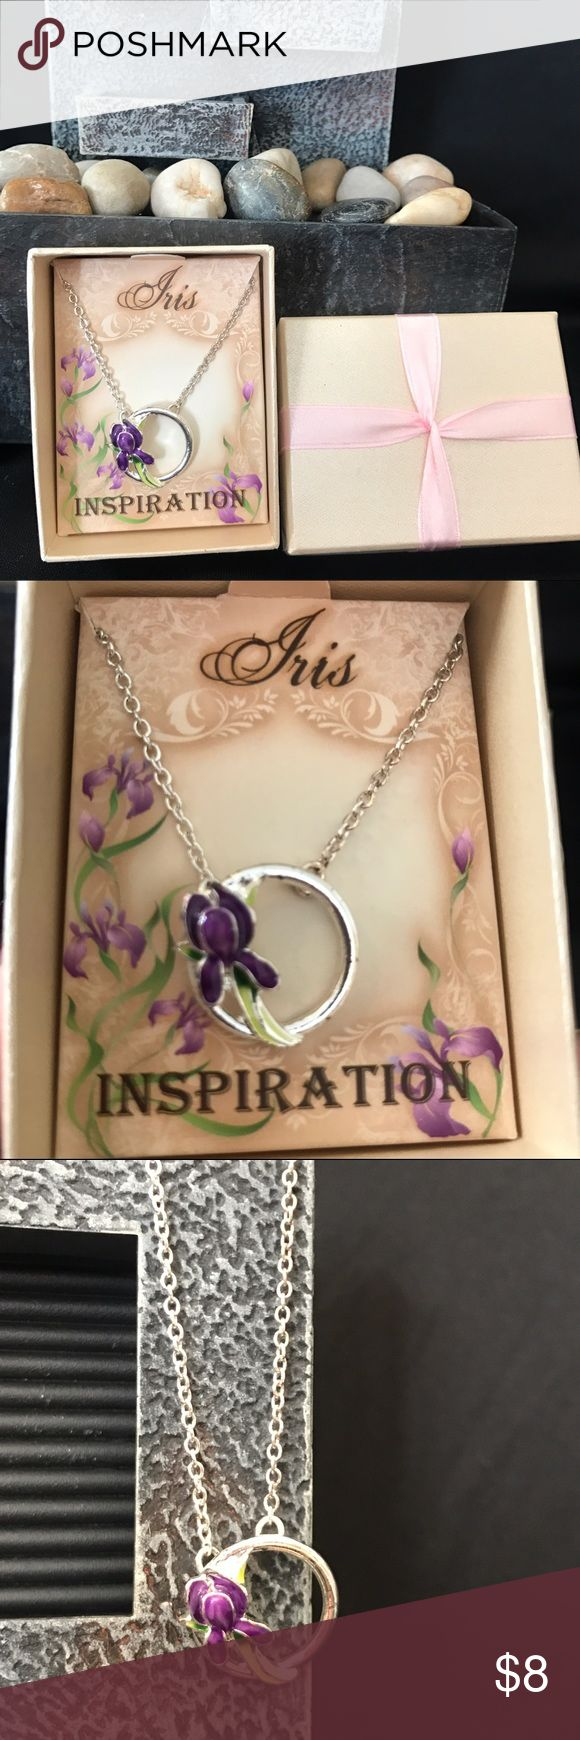 """Avon Iris Inspiration Pendant Necklace NIB Avon Iris Inspiration pendant necklace, 16"""" silvertone chain with 3"""" extender. The iris pendant is 3/4"""" long. Iris is the February birth flower, as well as the state flower of Tennessee! Give the gift of Iris Inspiration! Comes in a box suitable for gift giving, as shown in the first photo. Avon Jewelry Necklaces"""